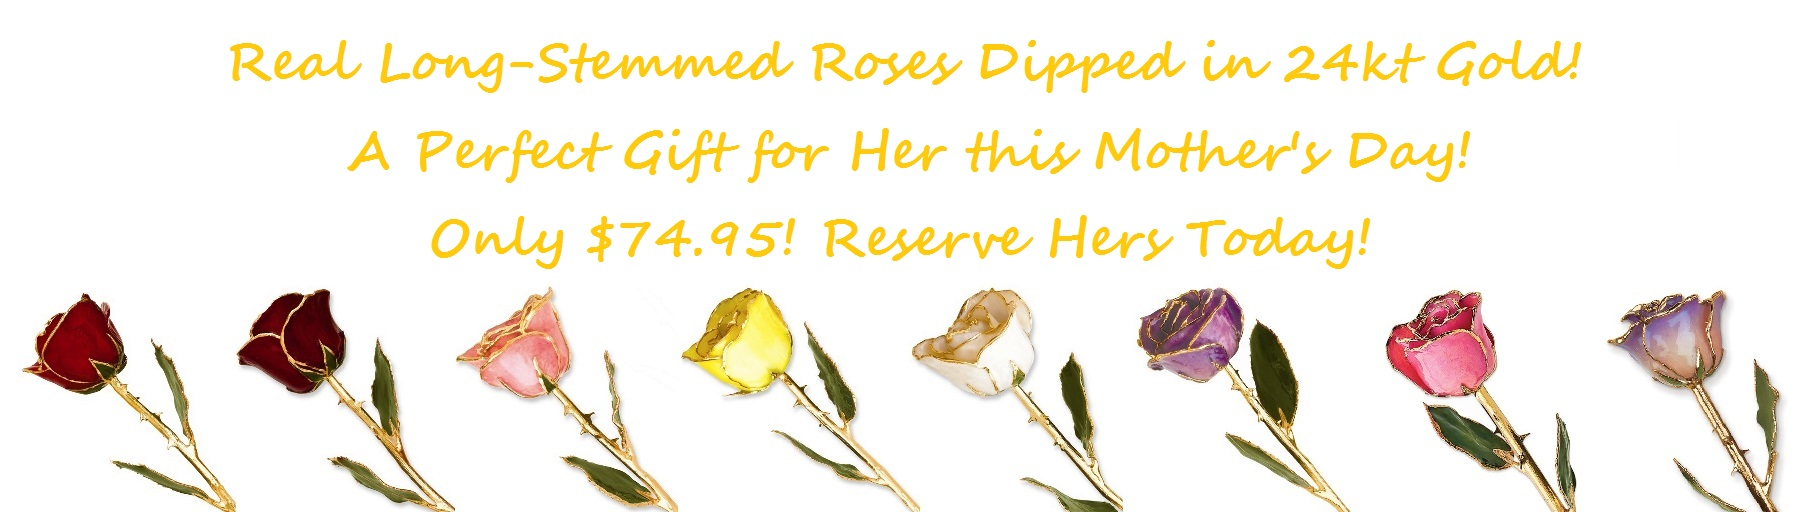 Gold-Dipped Roses for Website (Mother's Day)